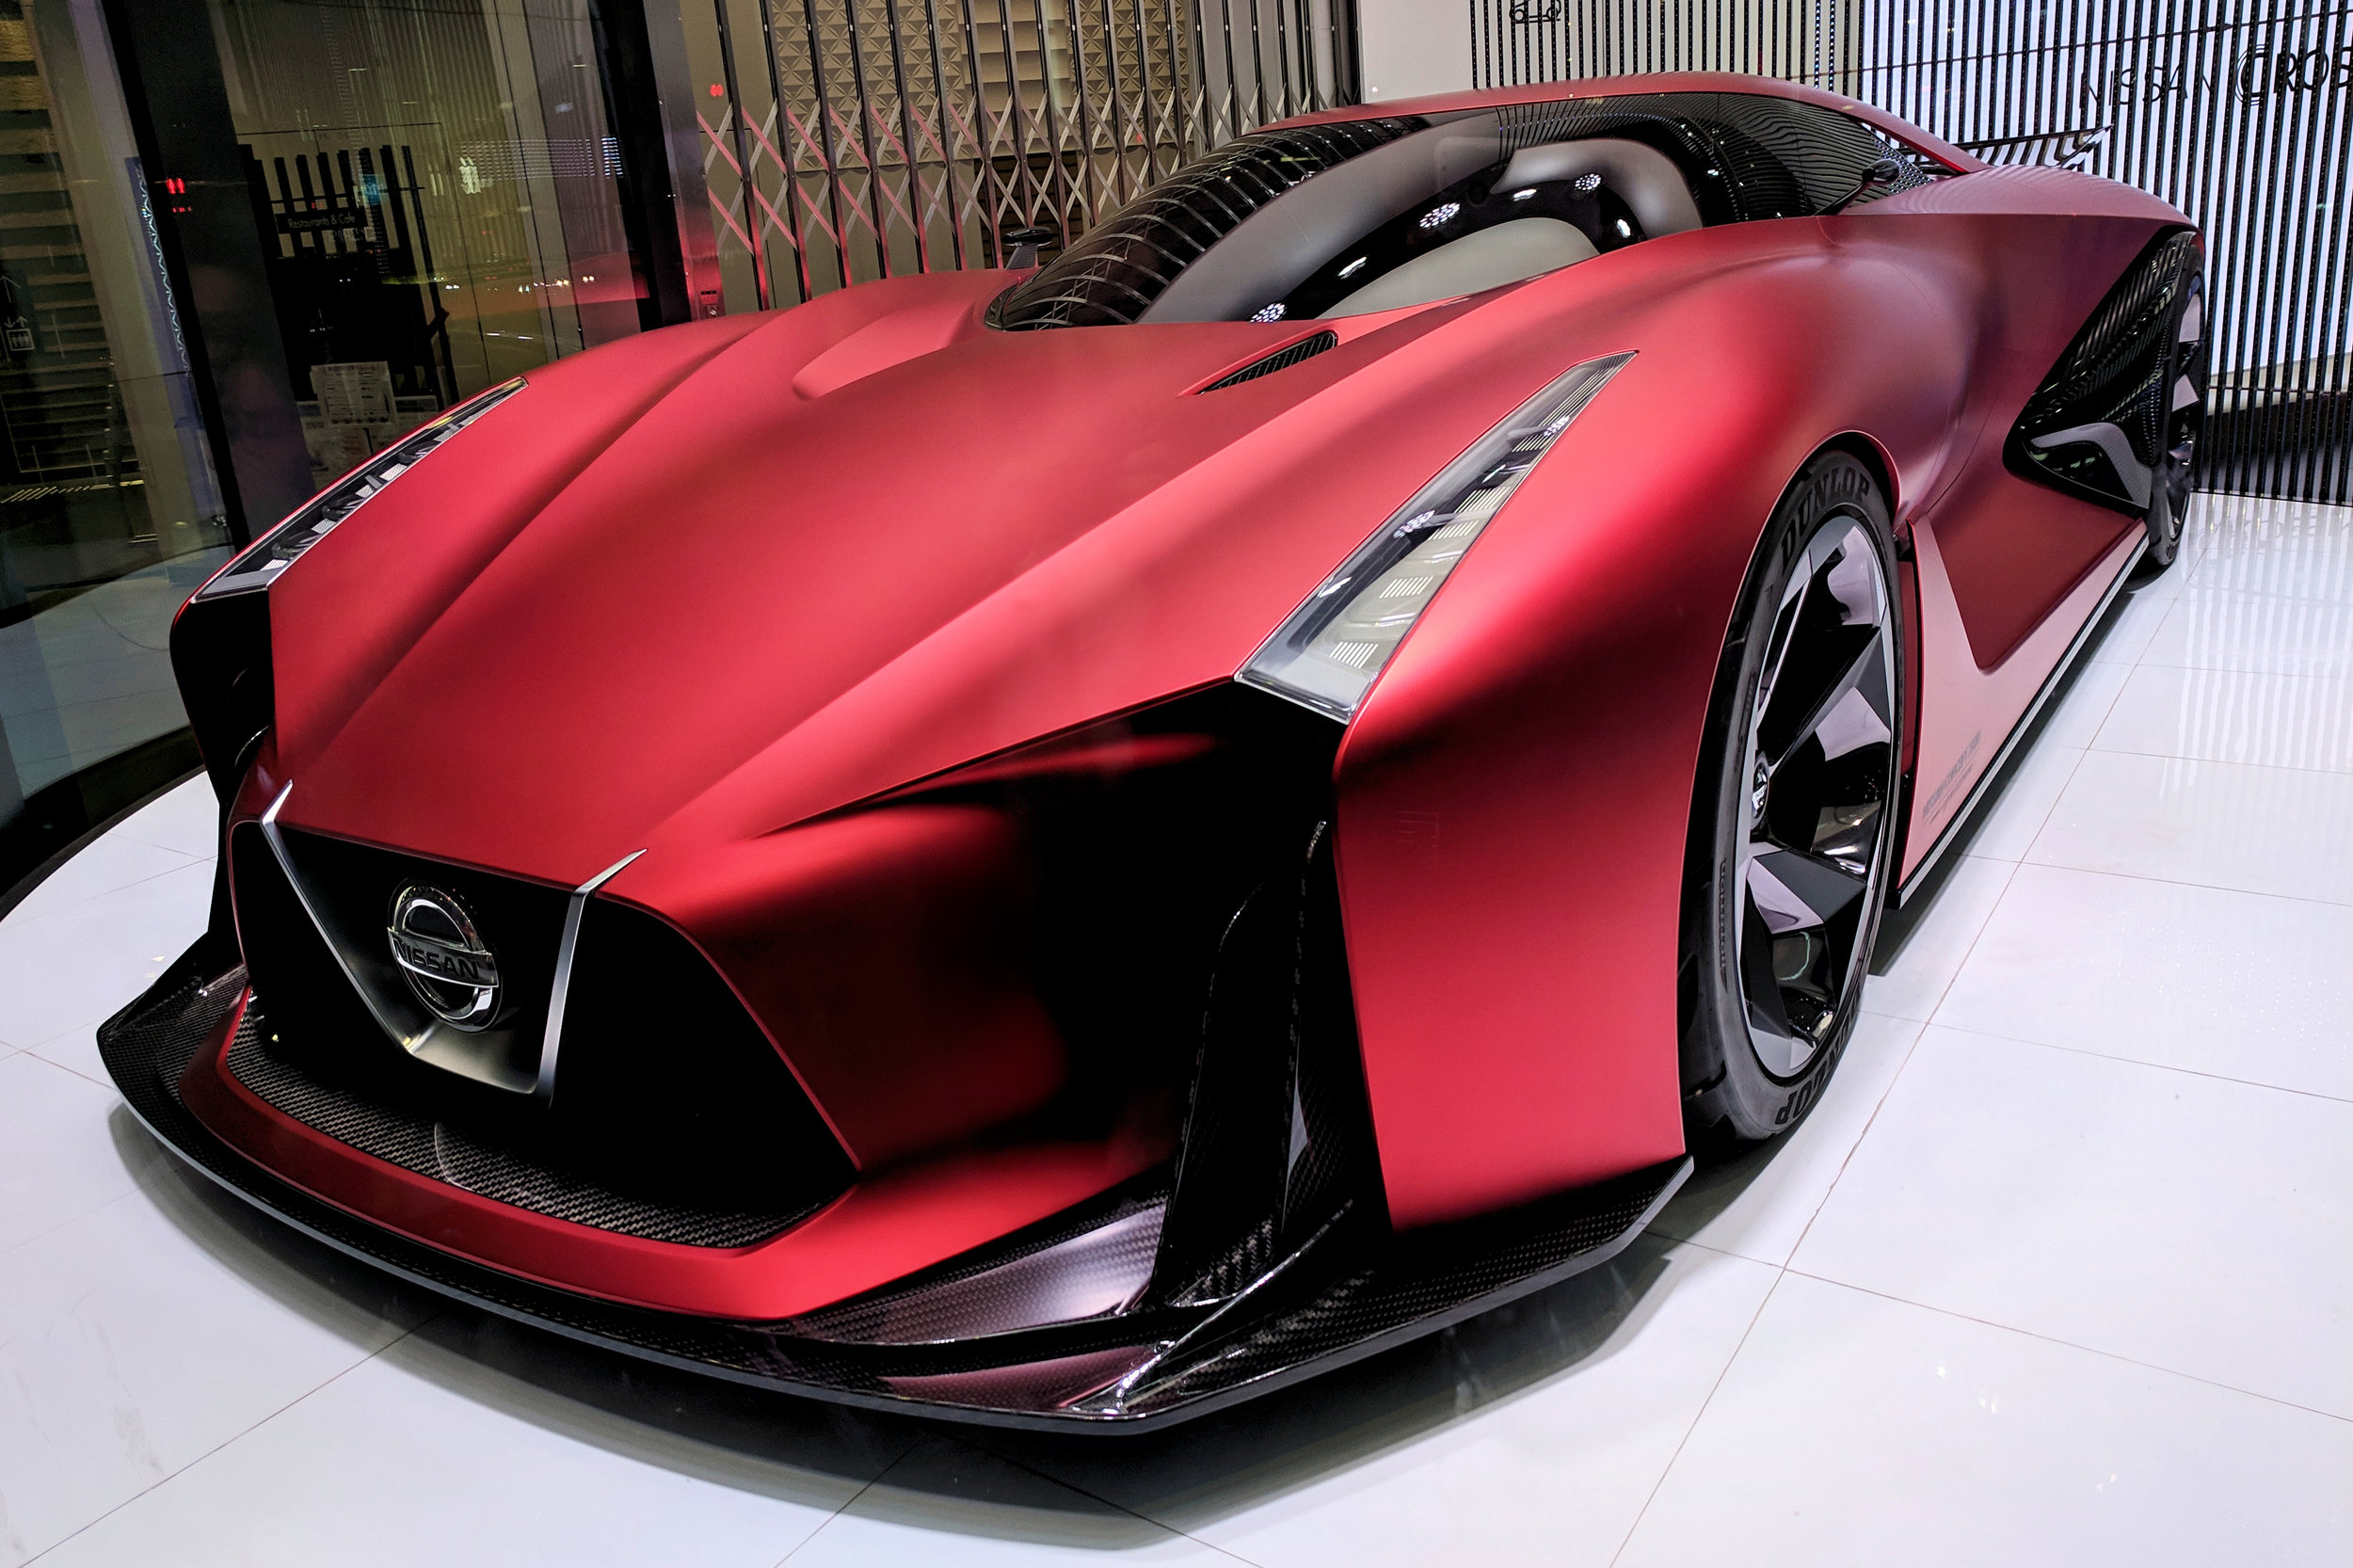 While gorgeous and obscenely expensive, this concept car can not leave its Ginza showroom unaided. It bears no relation to high-end hi-fi…